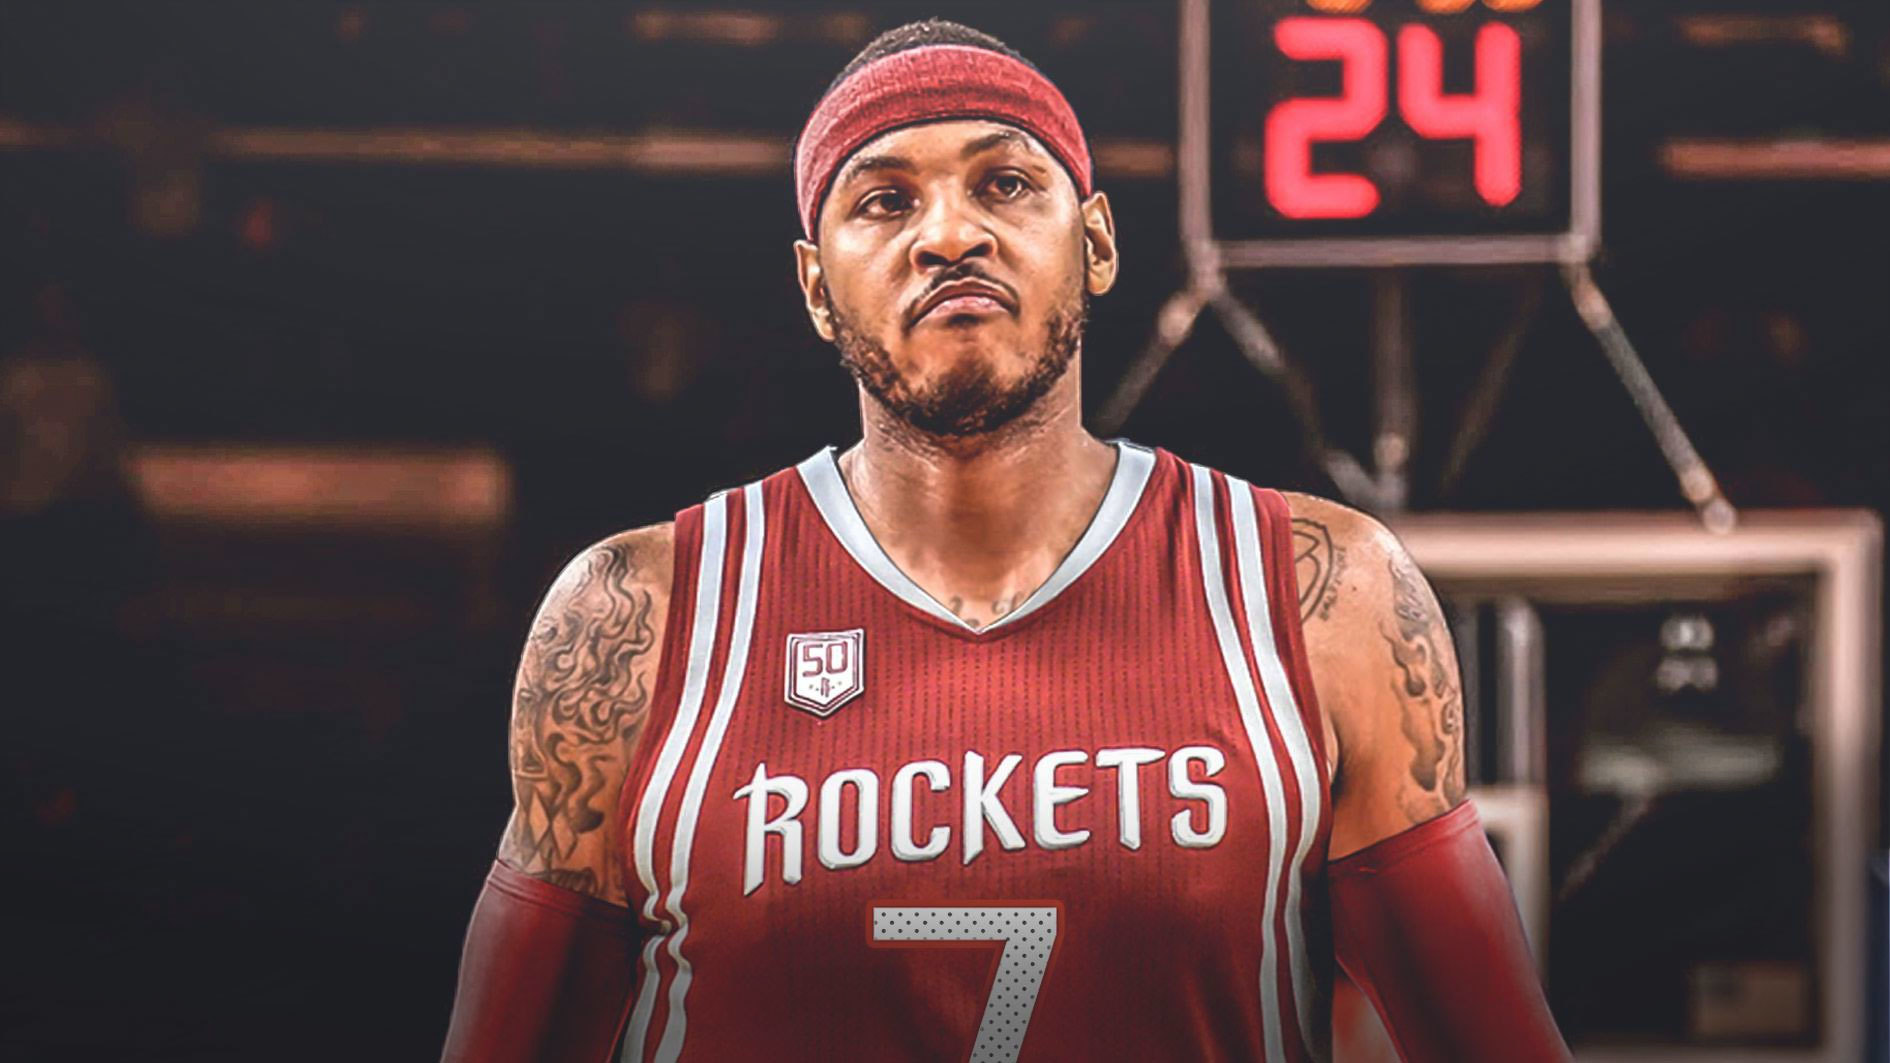 Houston_s-championship-odds-will-decrease-if-they-sign-Carmelo-Anthony.jpg